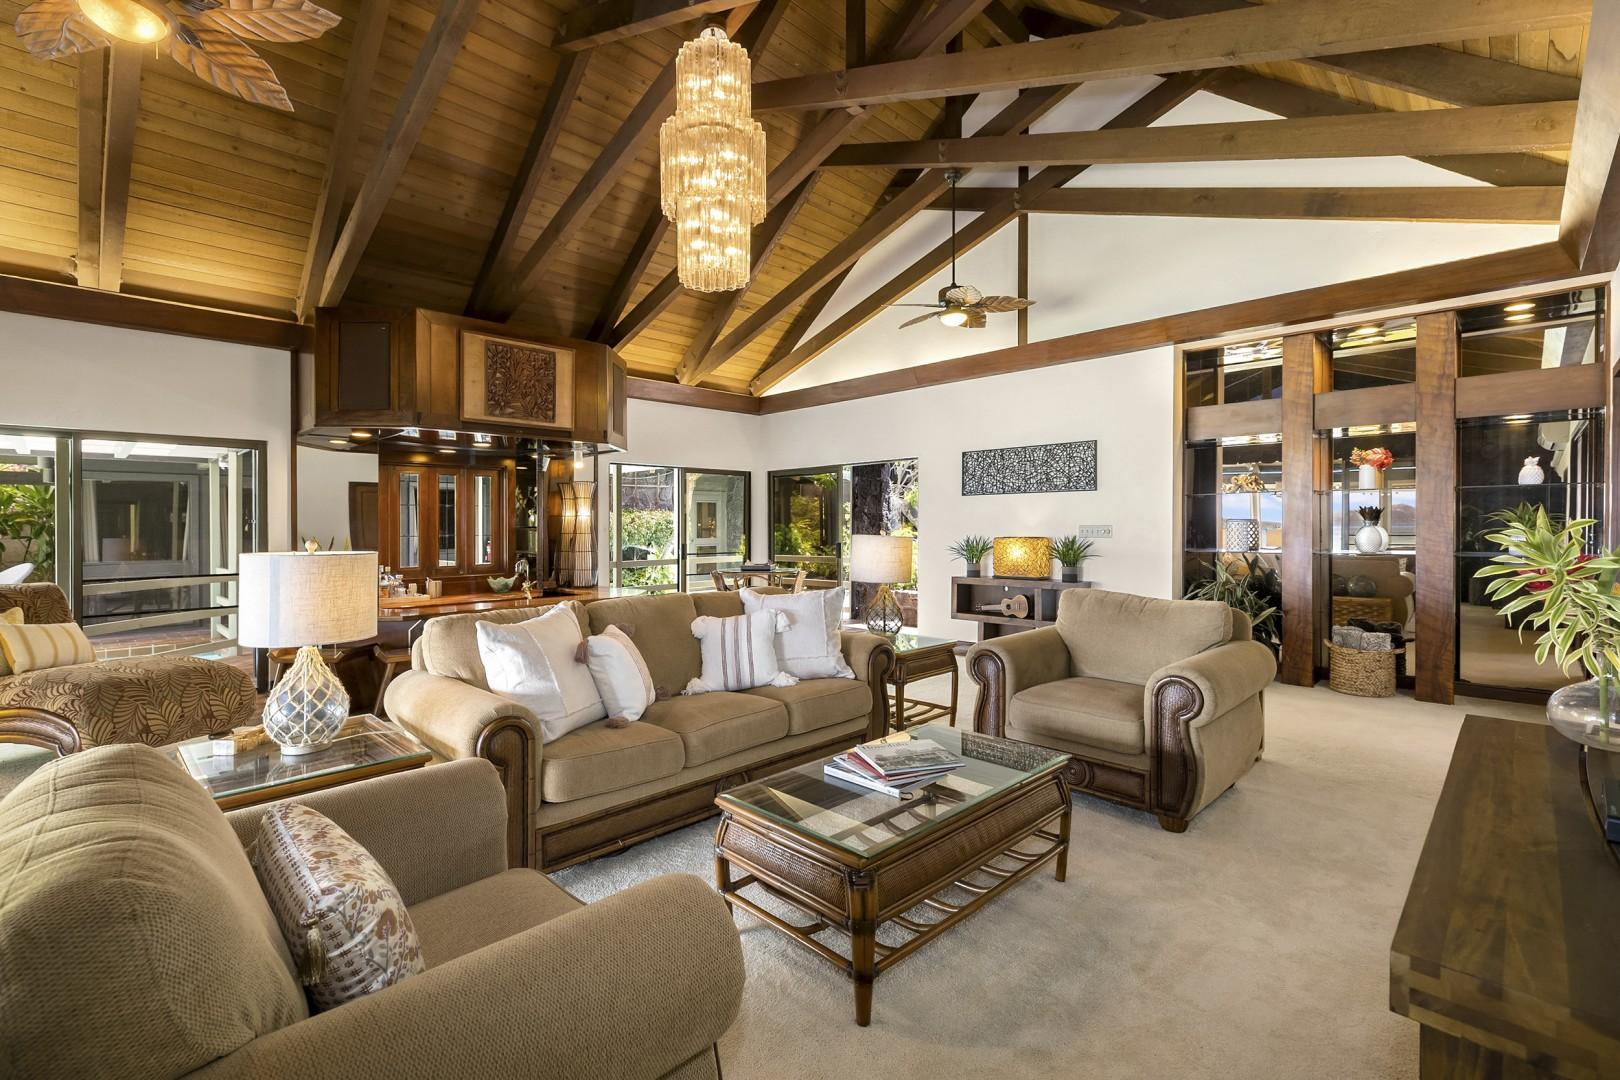 Living Room features vaulted ceilings, a/c and custom bar